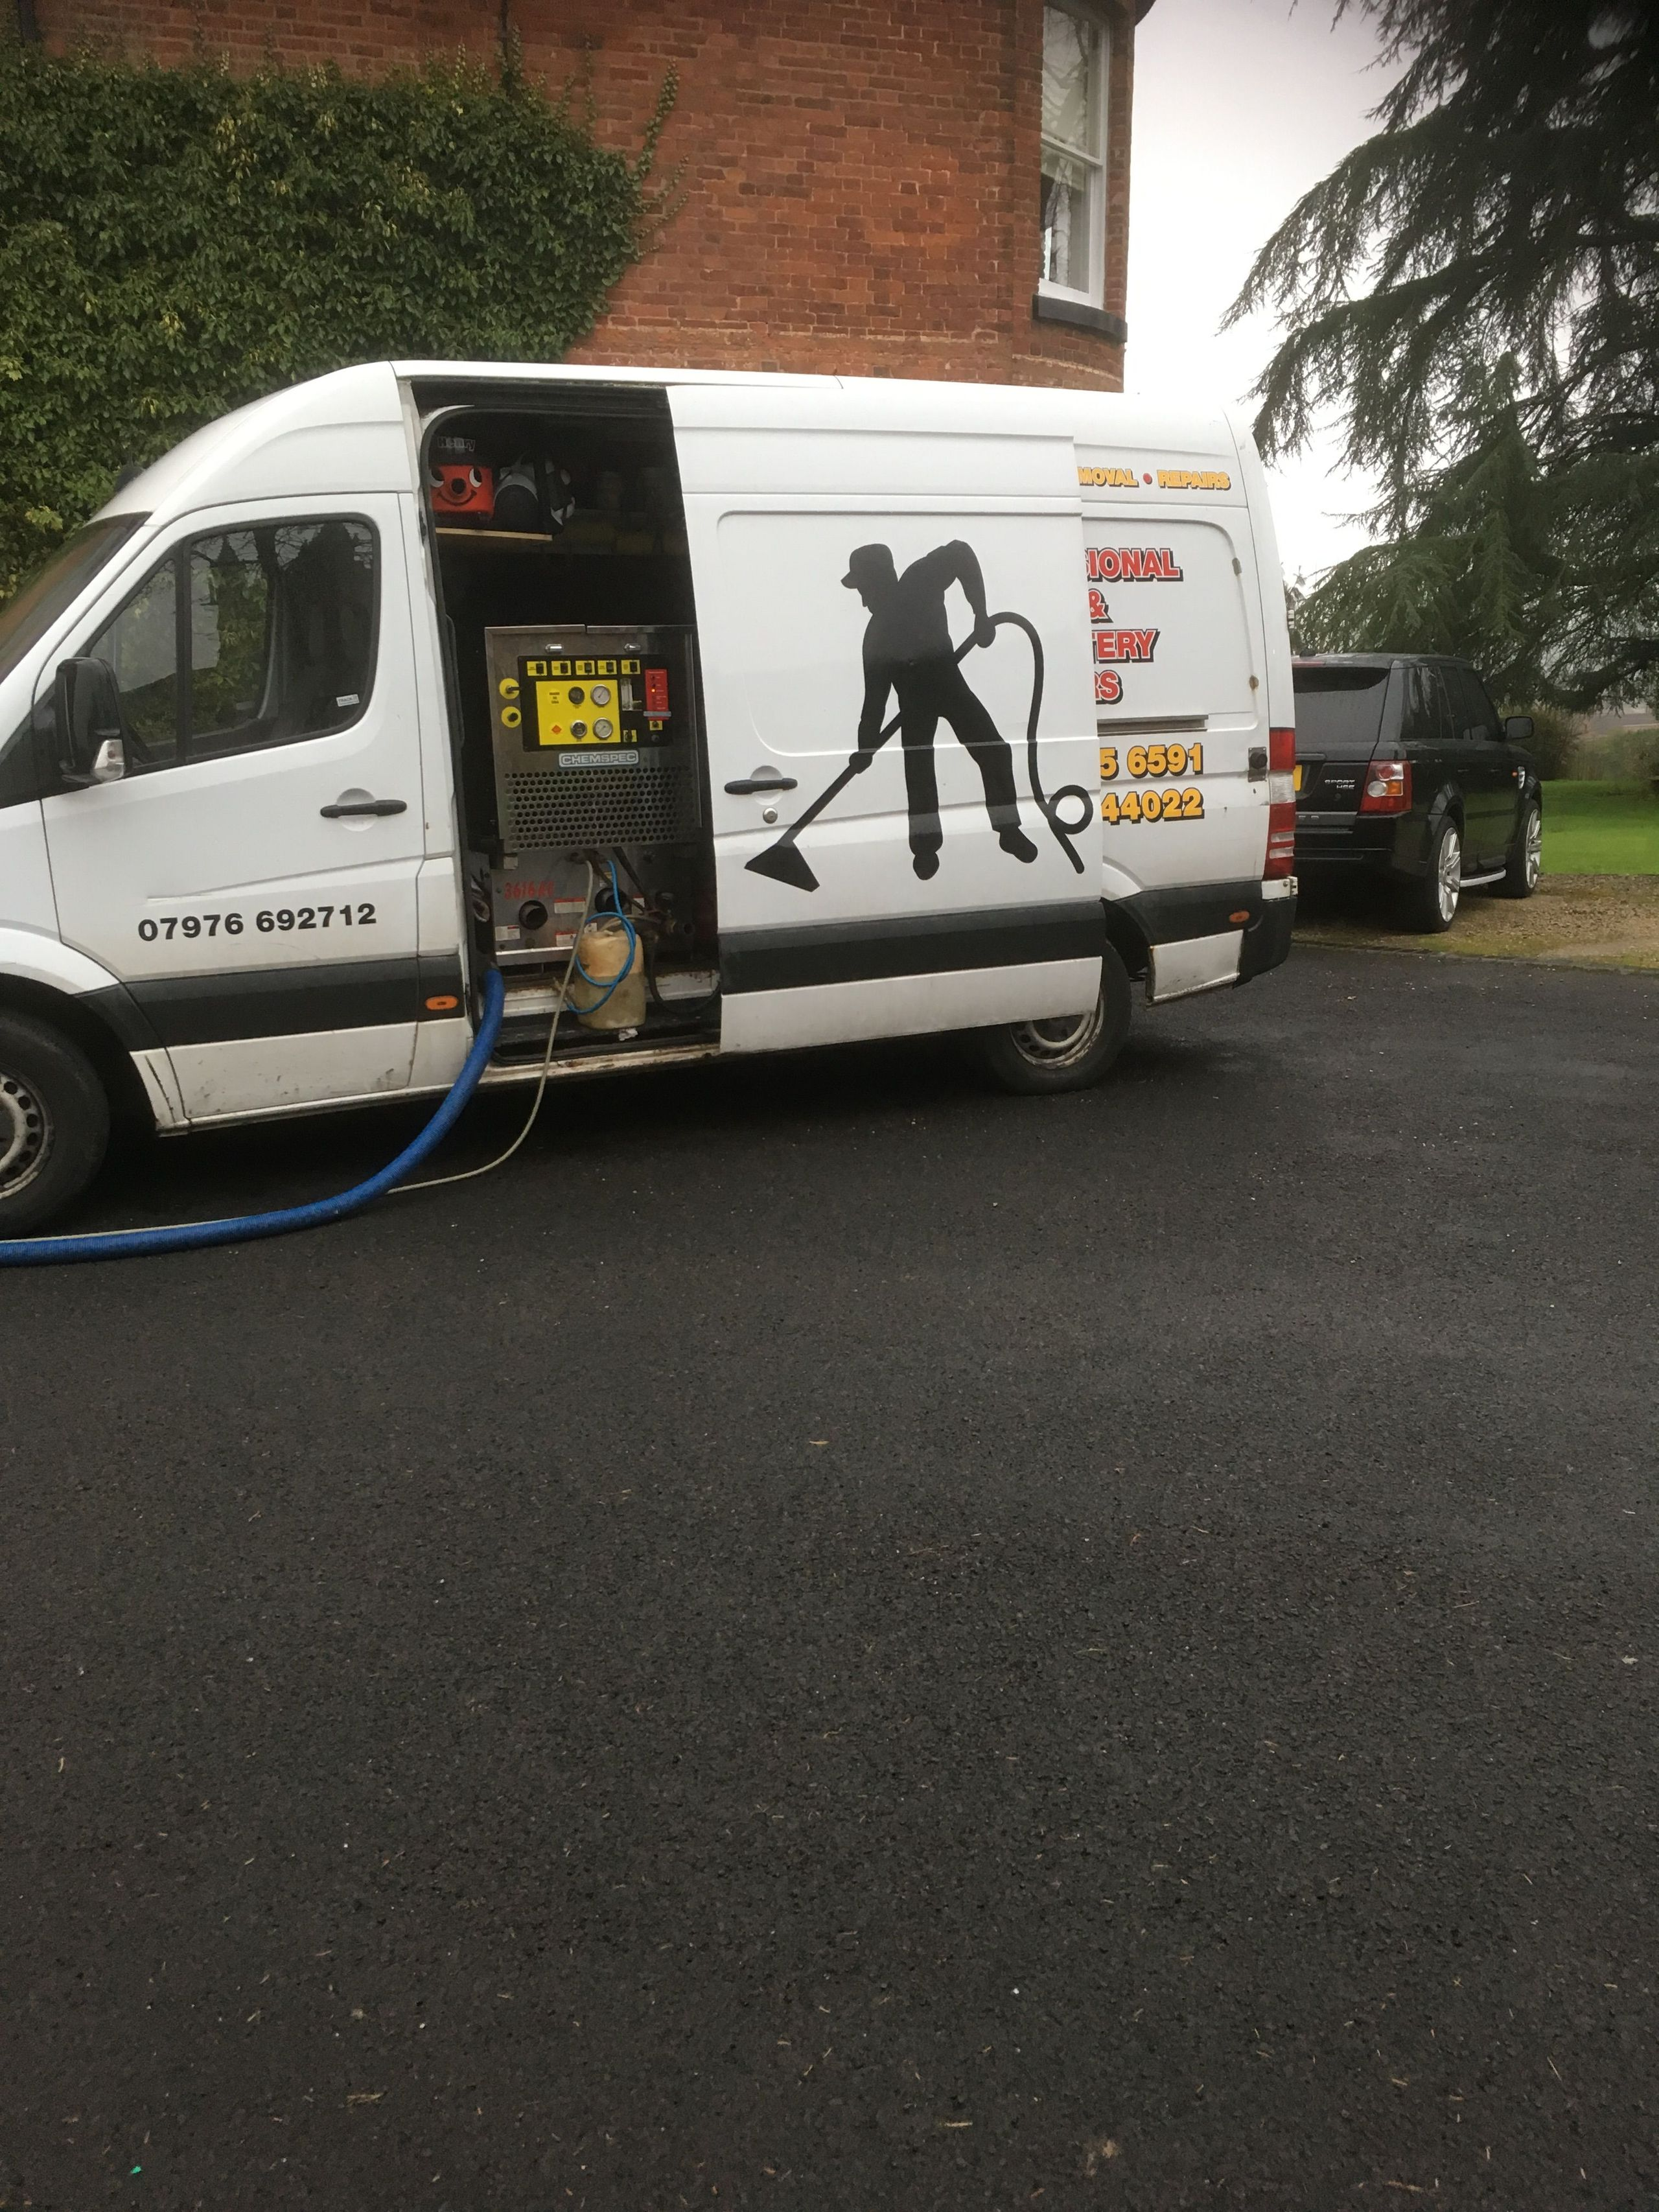 Main photo for PROFESSIONAL CARPET & UPHOLSTERY CLEANERS